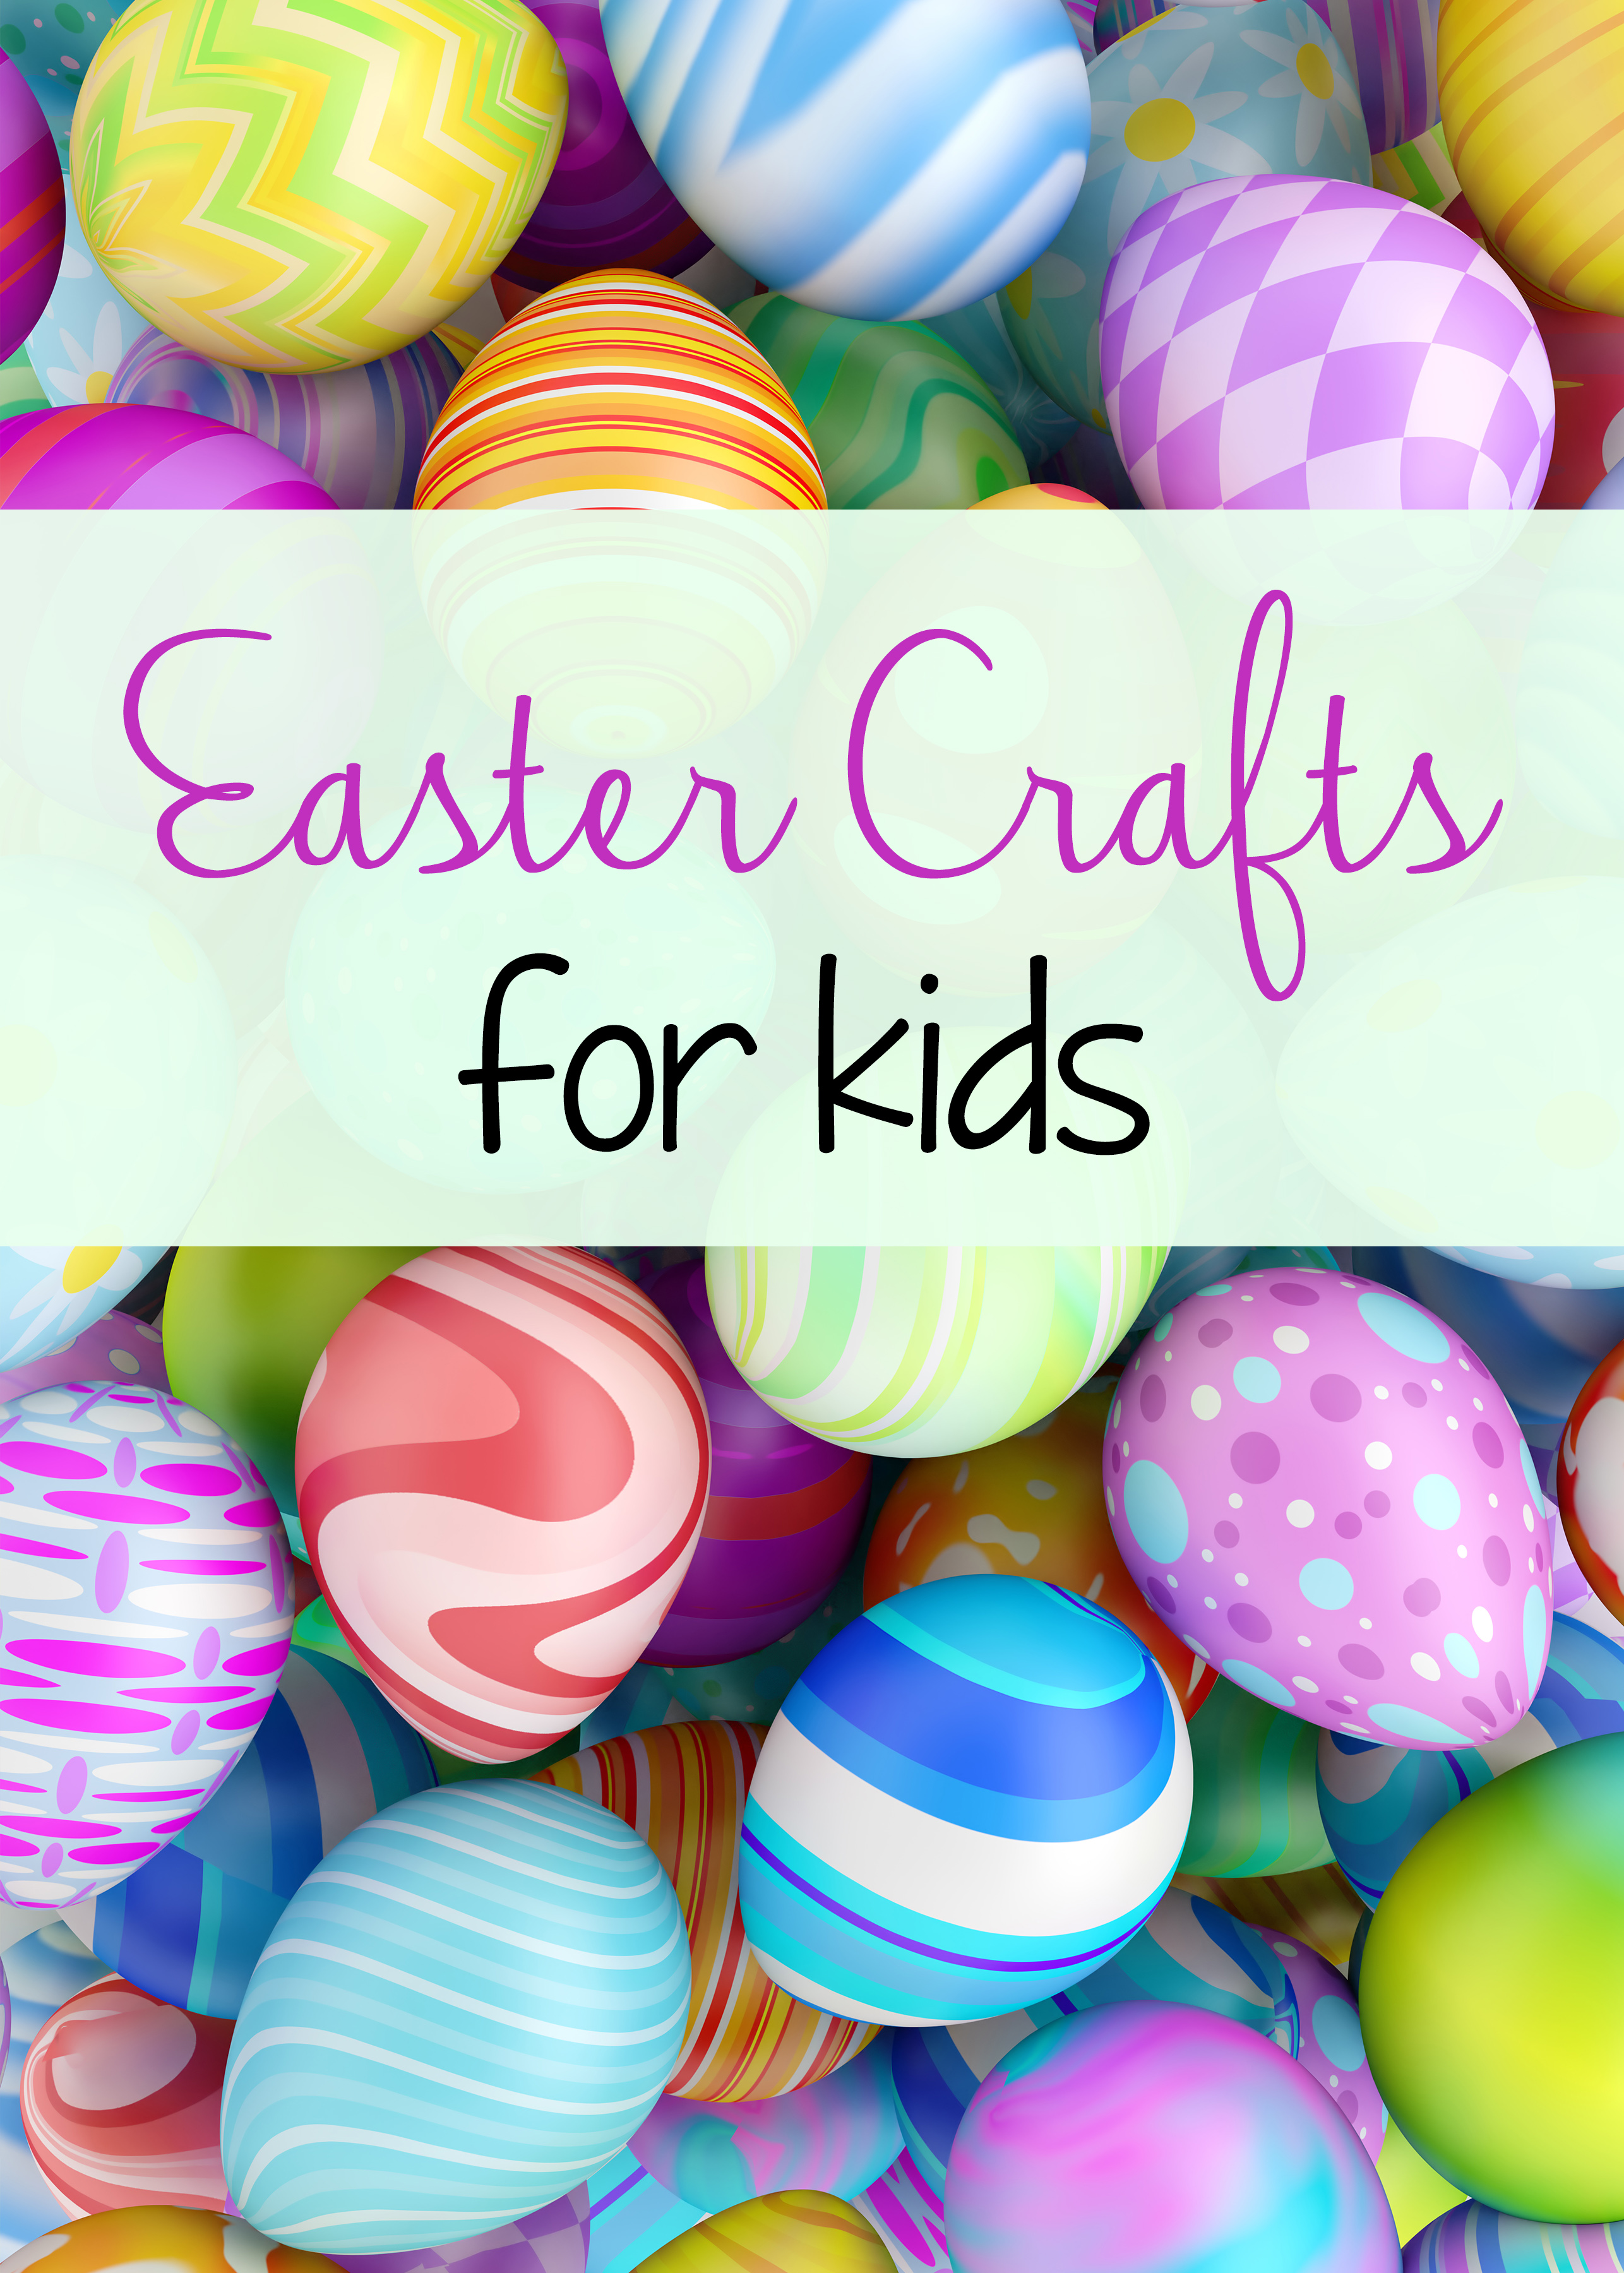 Great list of Easter crafts to do with kids this year! From egg racers to basket weaving, we've got the best Easter crafts listed here for you!